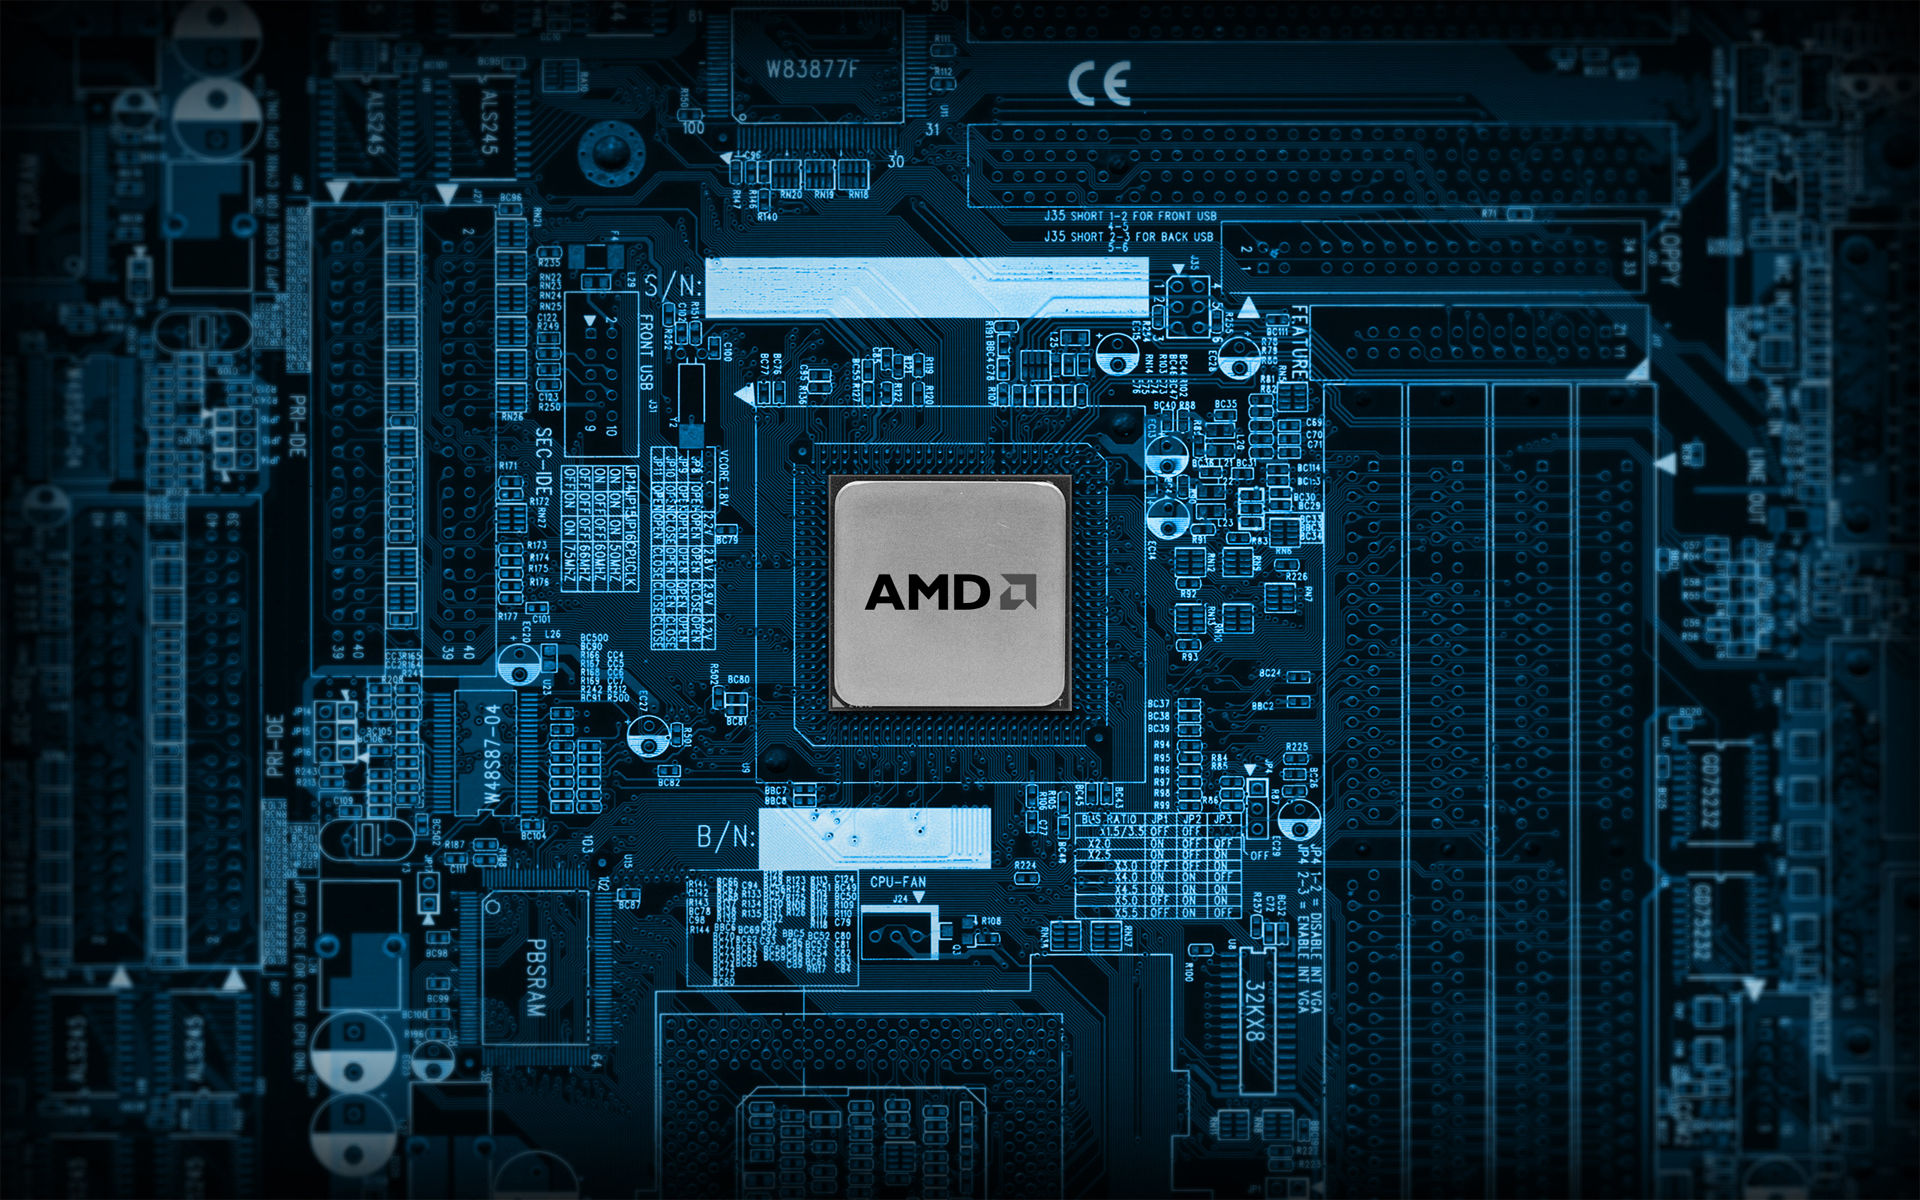 An-AMD-for-your-background-on-your-AMD-powered-laptop-Could-there-be-a-better-combinati-wallpaper-wp423625-1